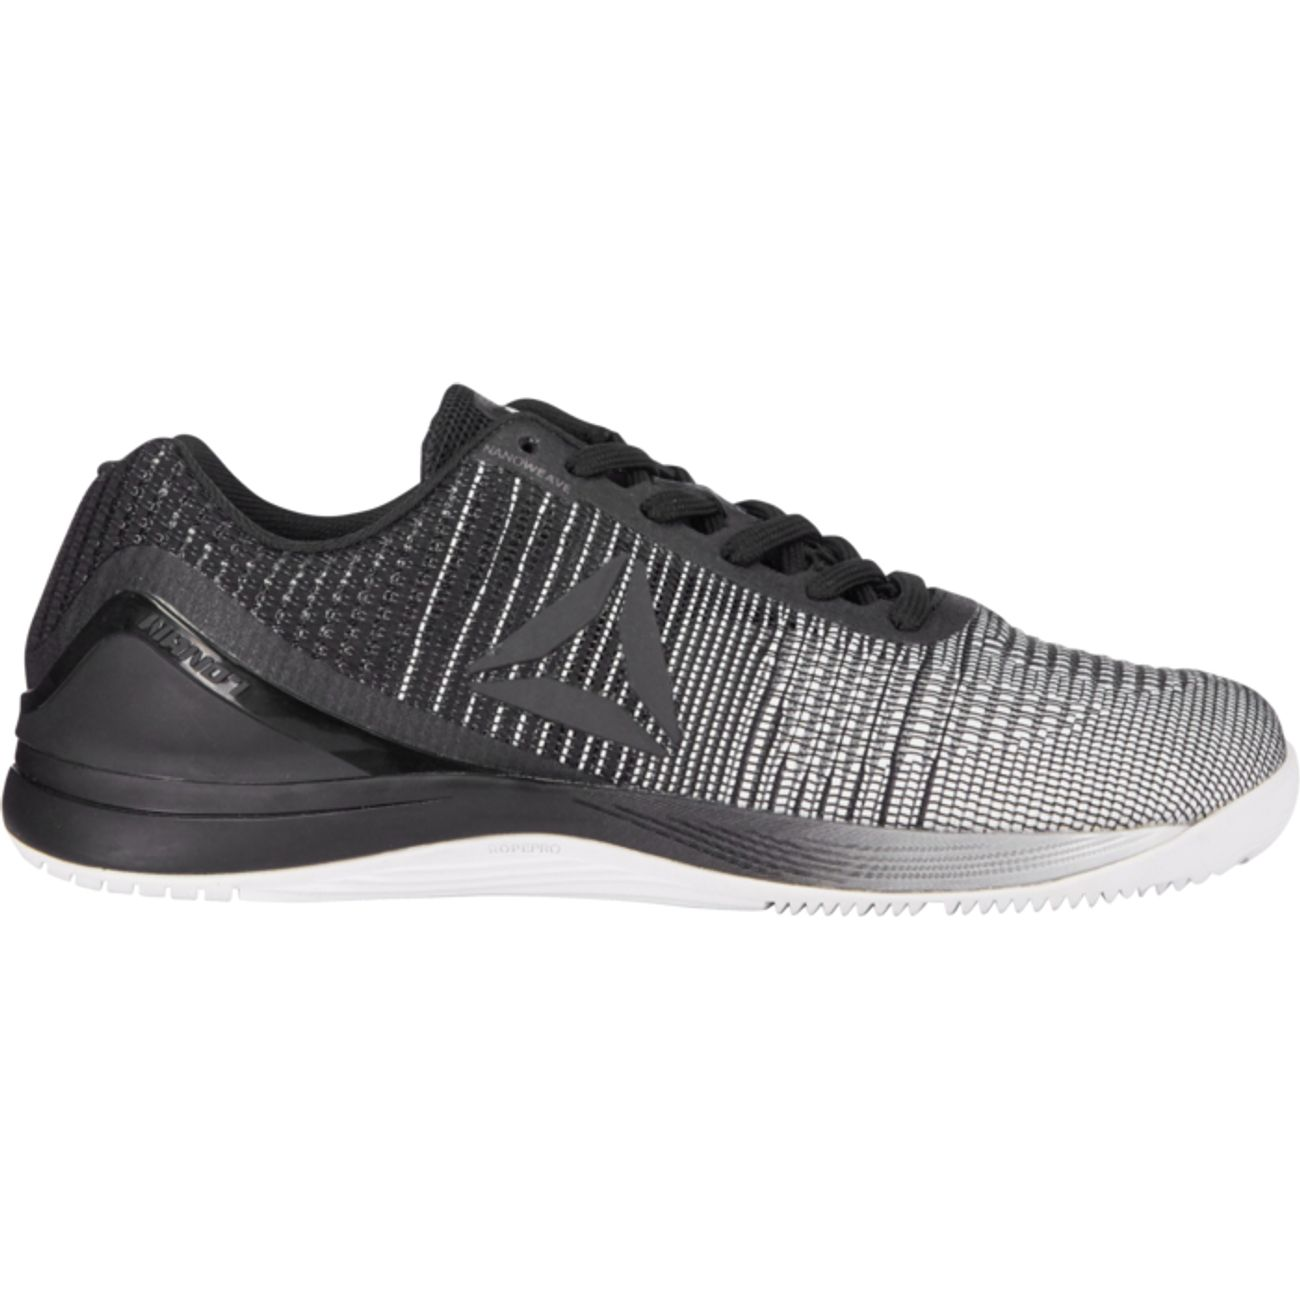 Chaussures Homme Multisport homme REEBOK CROSSFIT NANO 7